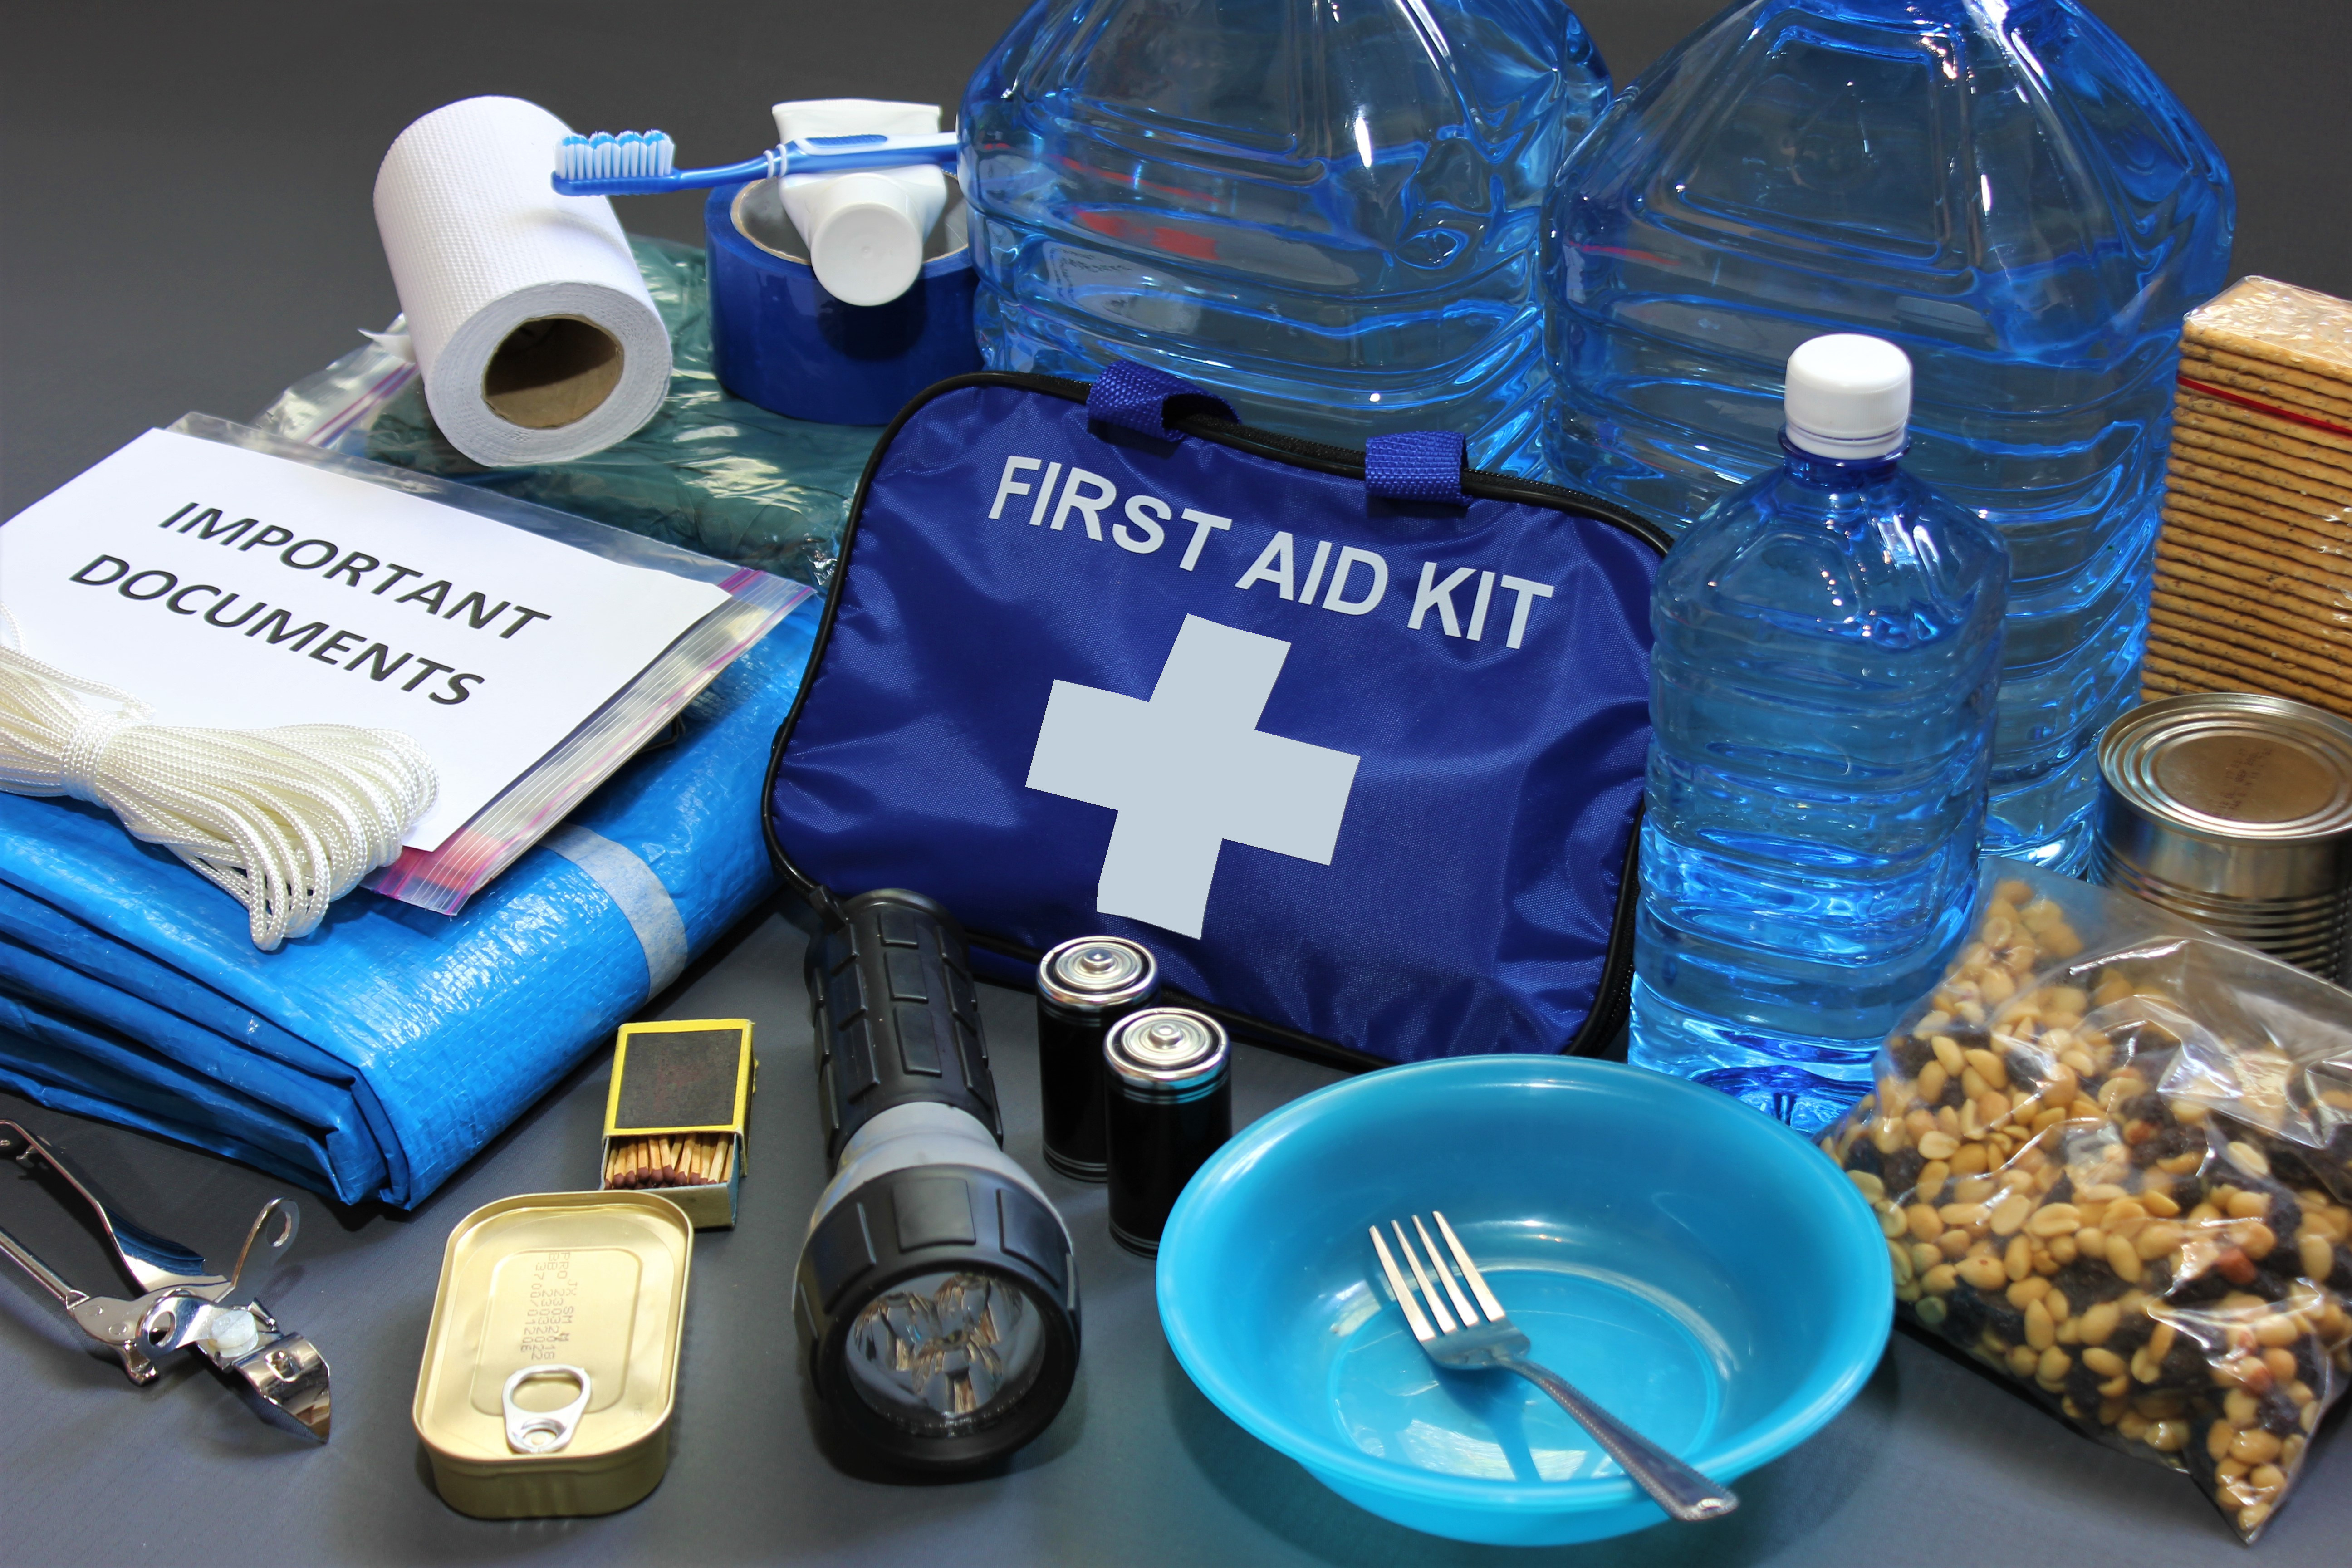 A first-aid kit with a bag, can opener, flashlight, toilet paper, bowl, fork, toothbrush.